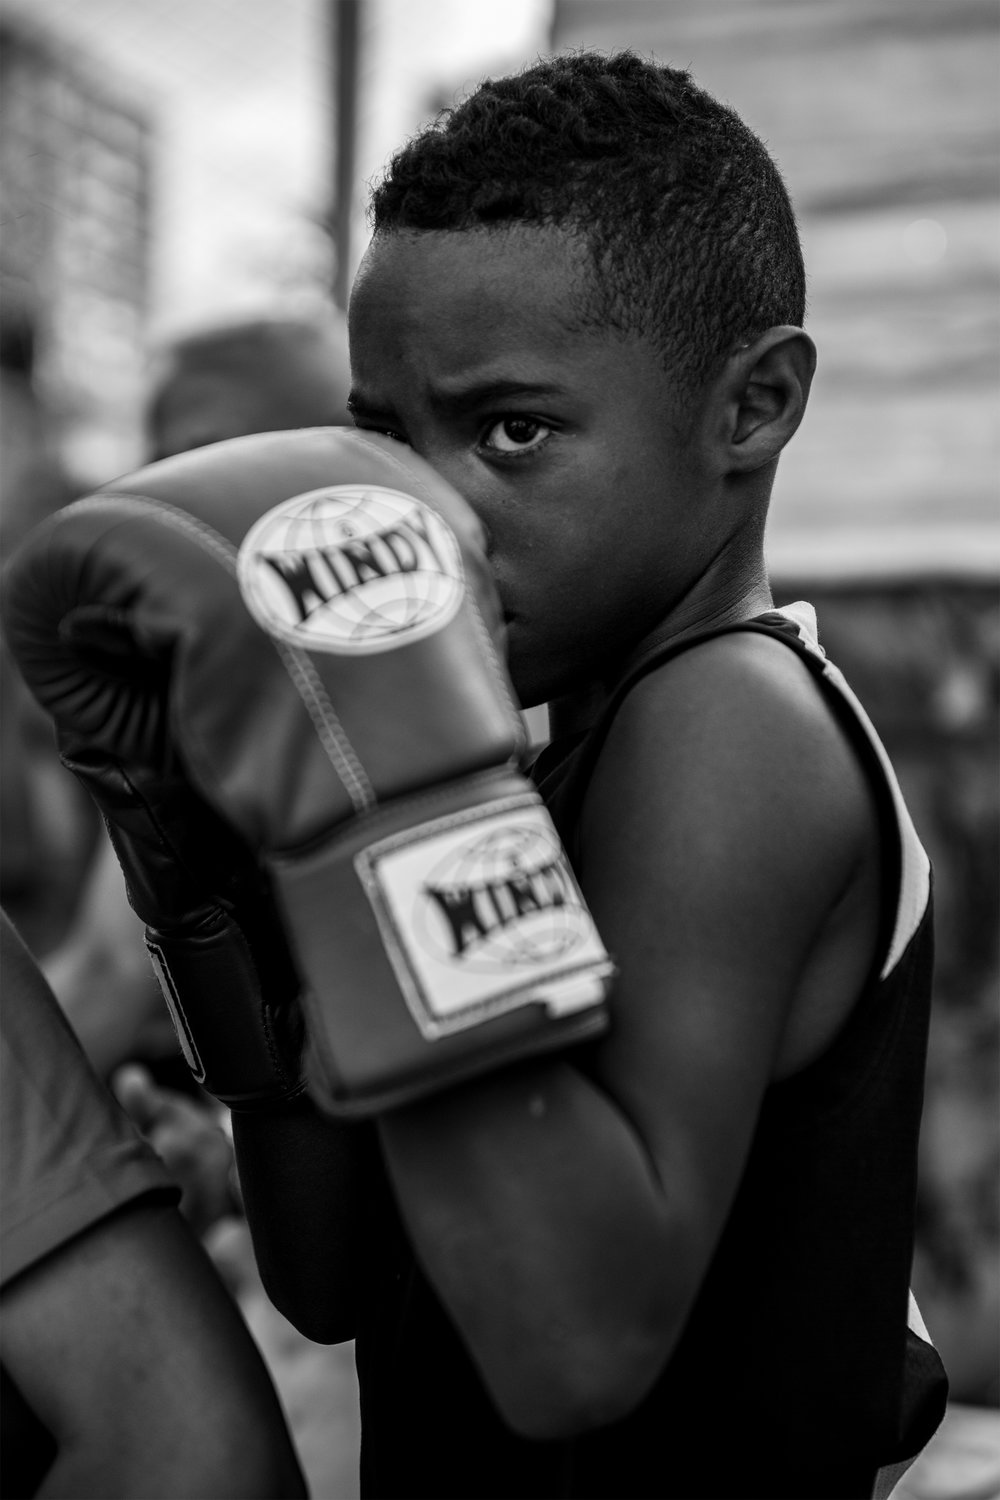 HAVANA_Boxing_2018_APR_LGP_6621_BW_WEB.jpg